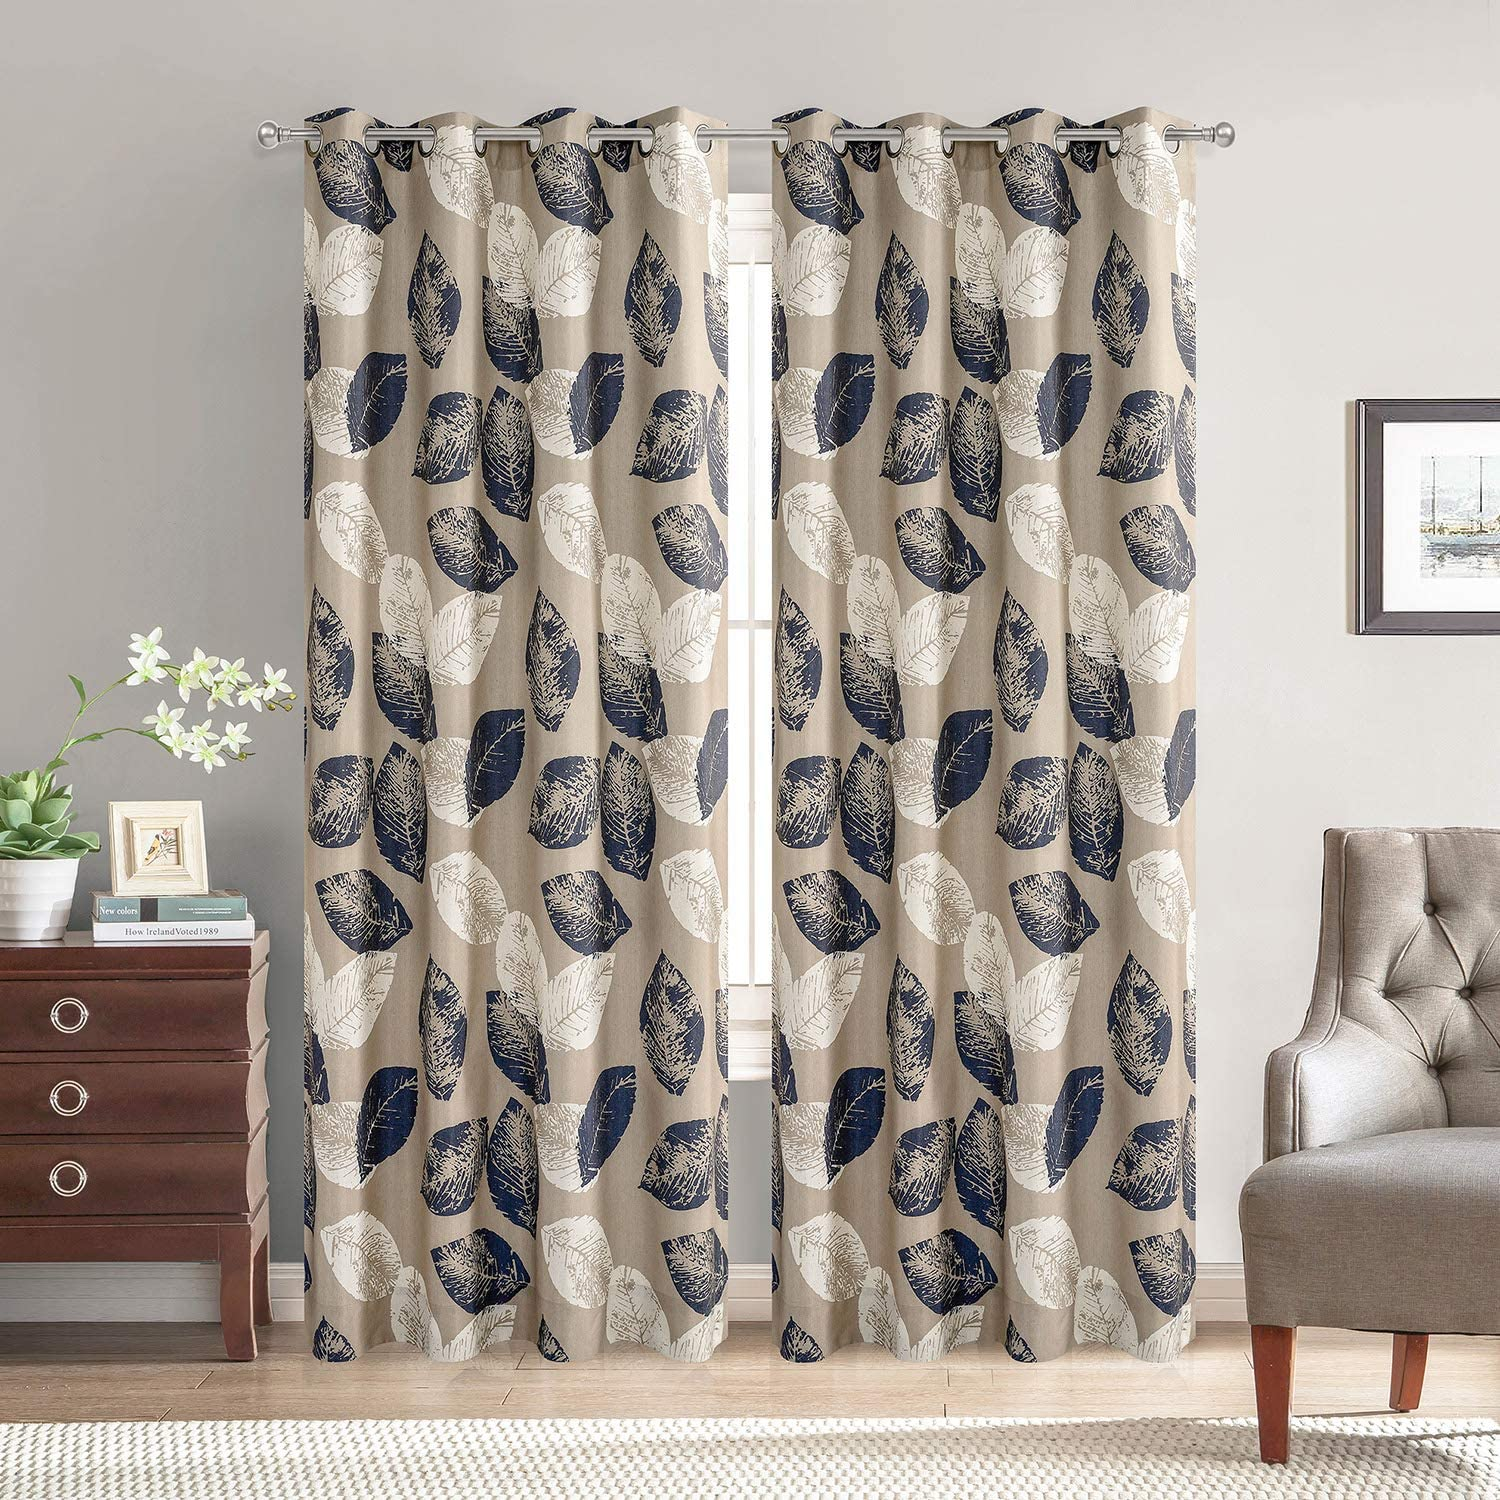 VOGOL Fashionable Curtains 106 Inches Long Navy Leaves Grommet Curtain Drapes for Bedroom and Living Room, 70%-80% Light Shading, 2 Panels, W60 x L106 inch